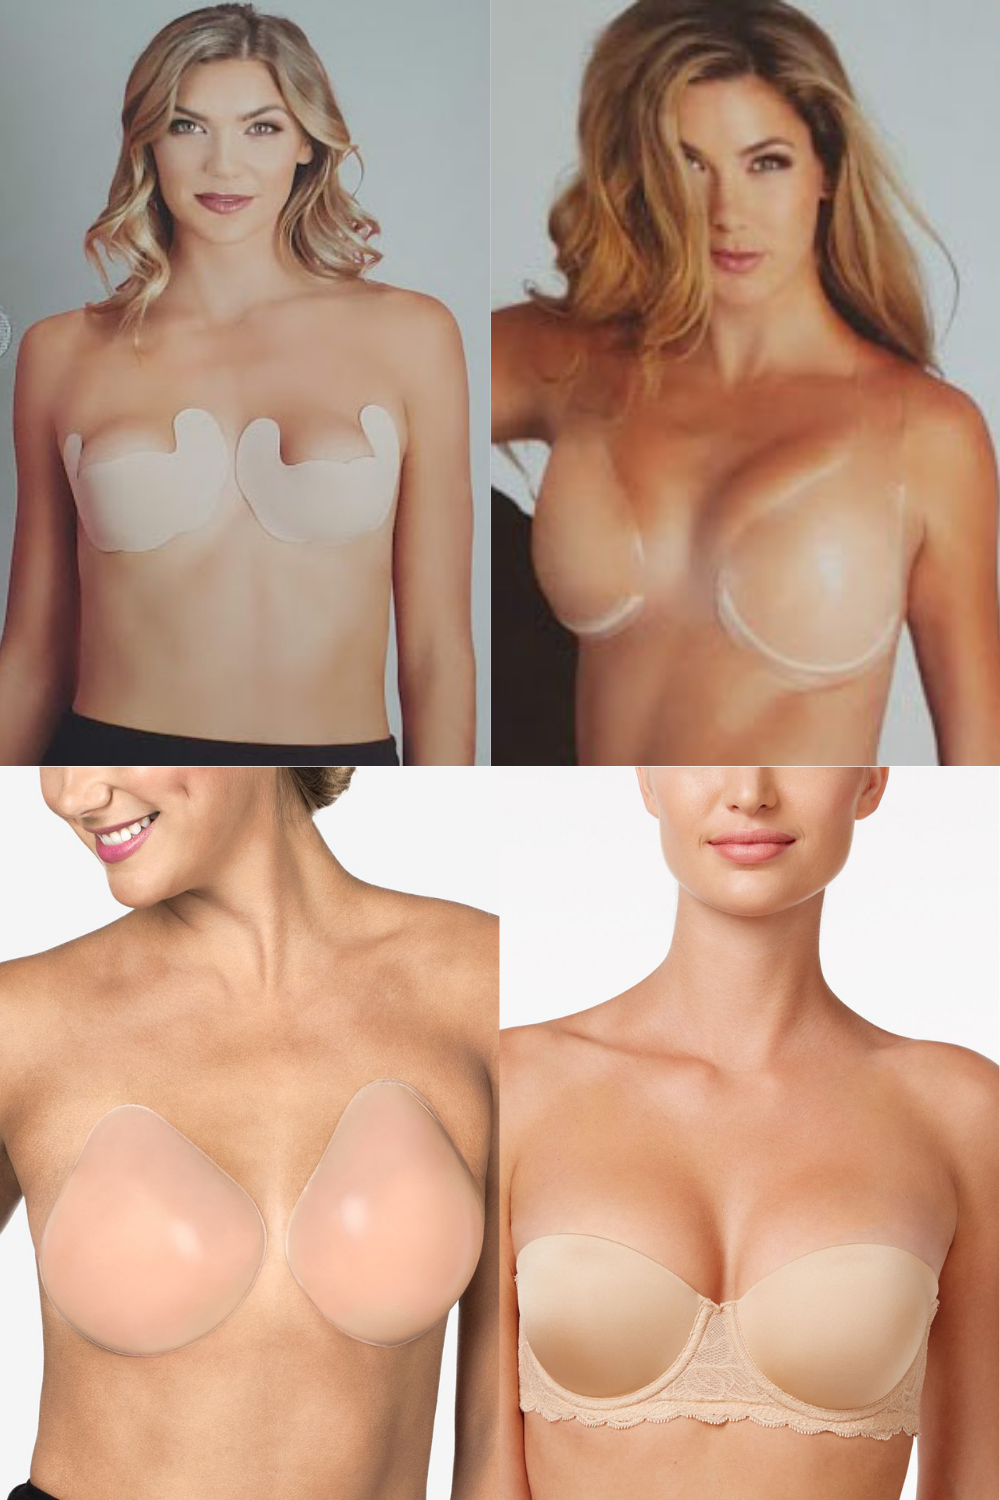 Breakthrough Finds for a Comfortable Strapless Bra–10 Different Options Reviewed